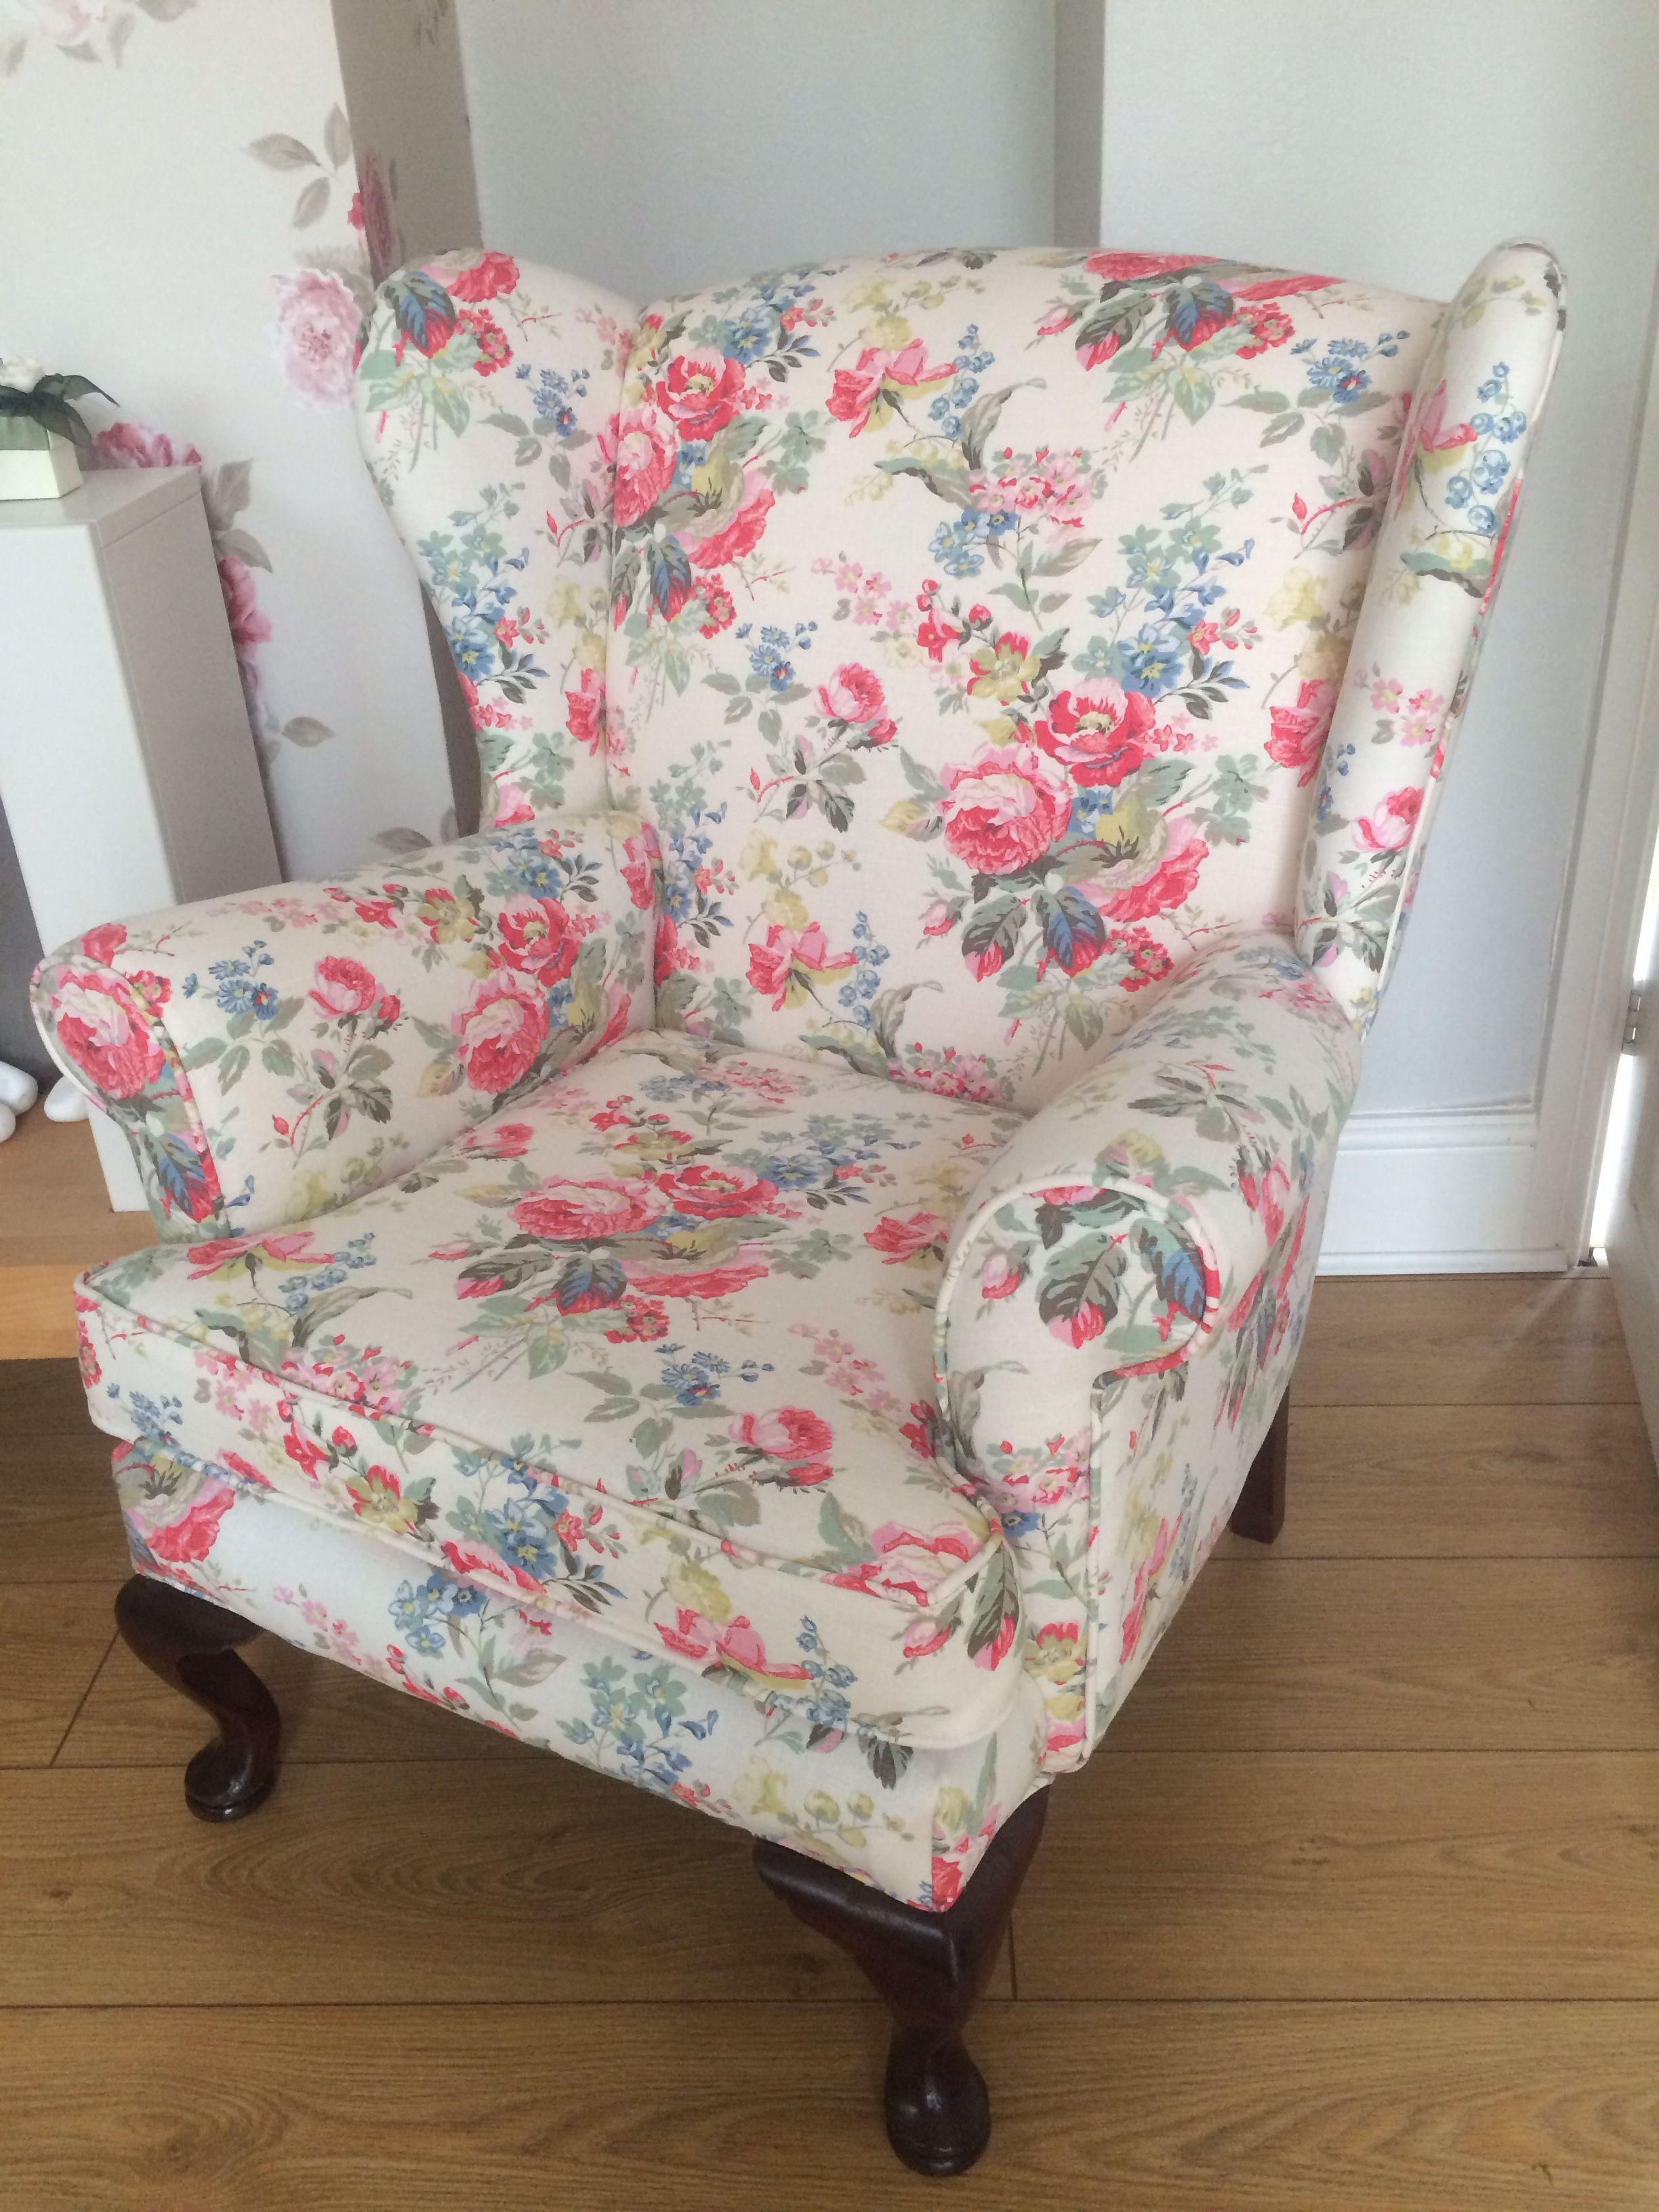 My lovely recovered chair in Cath Kidston portobello